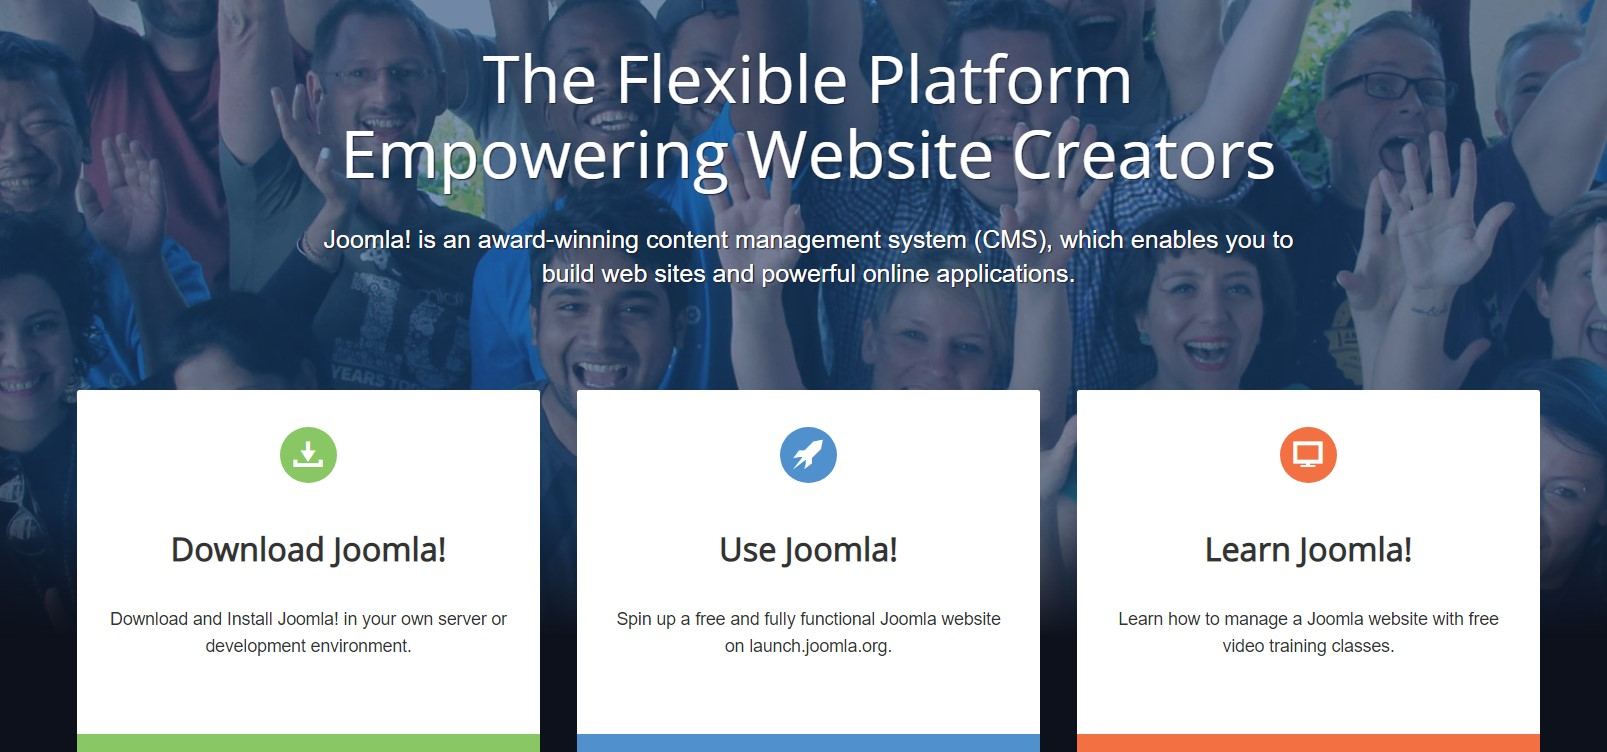 Joomla! is a powerful blogging platform with various customization options